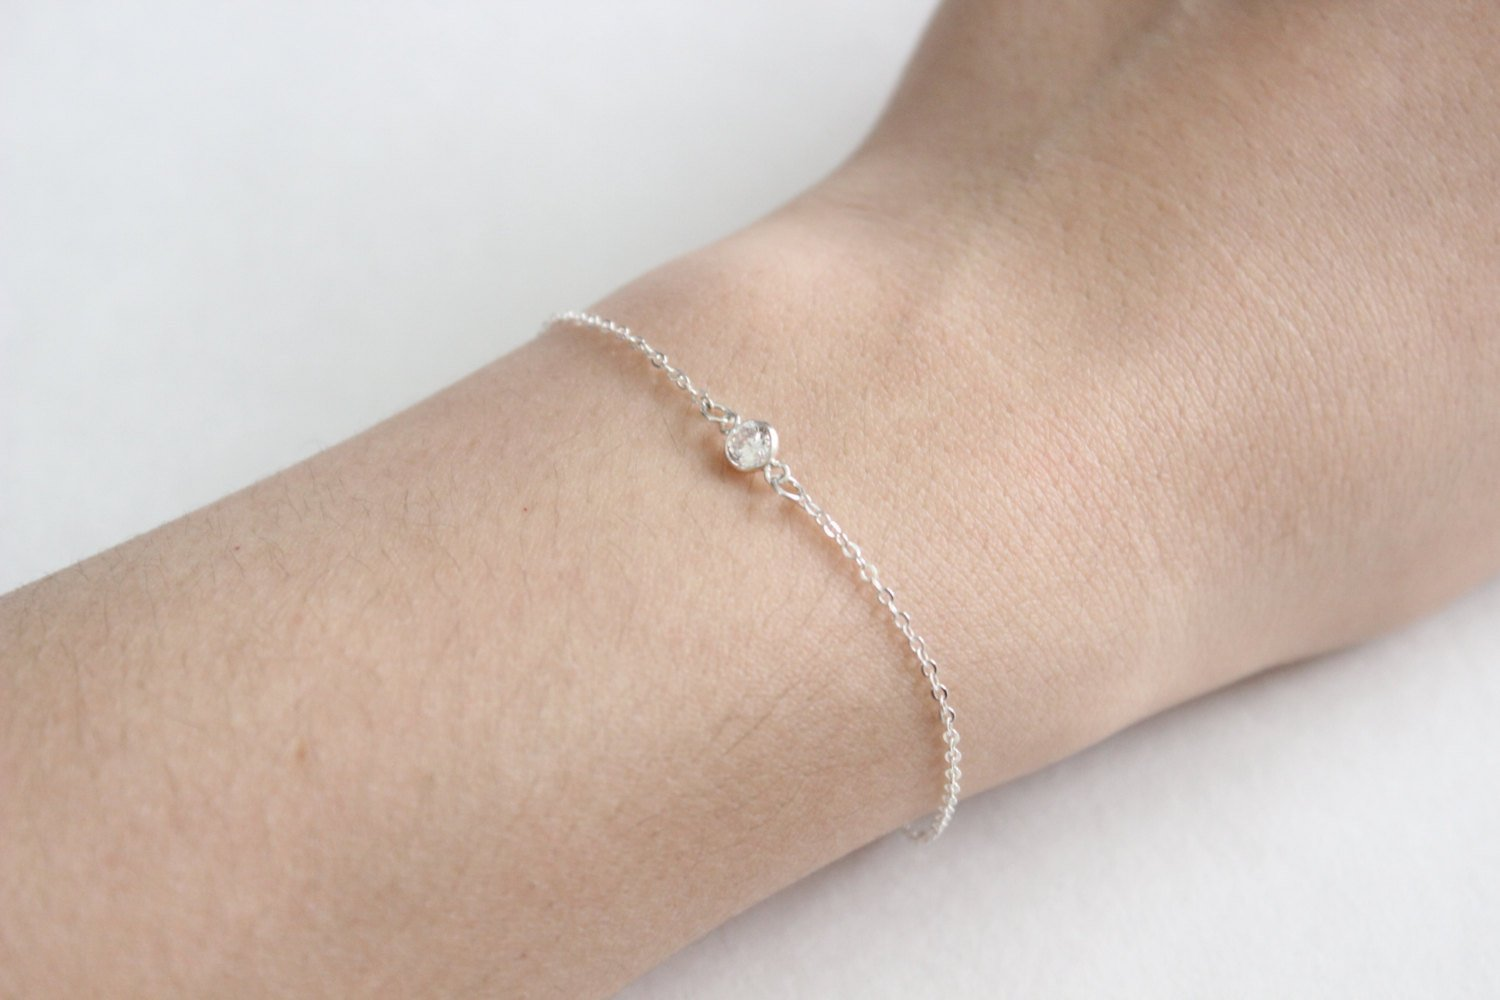 Sterling Silver Crystal Bracelet Tiny Sparkling Dainty Everyday Short Simple Jewelry